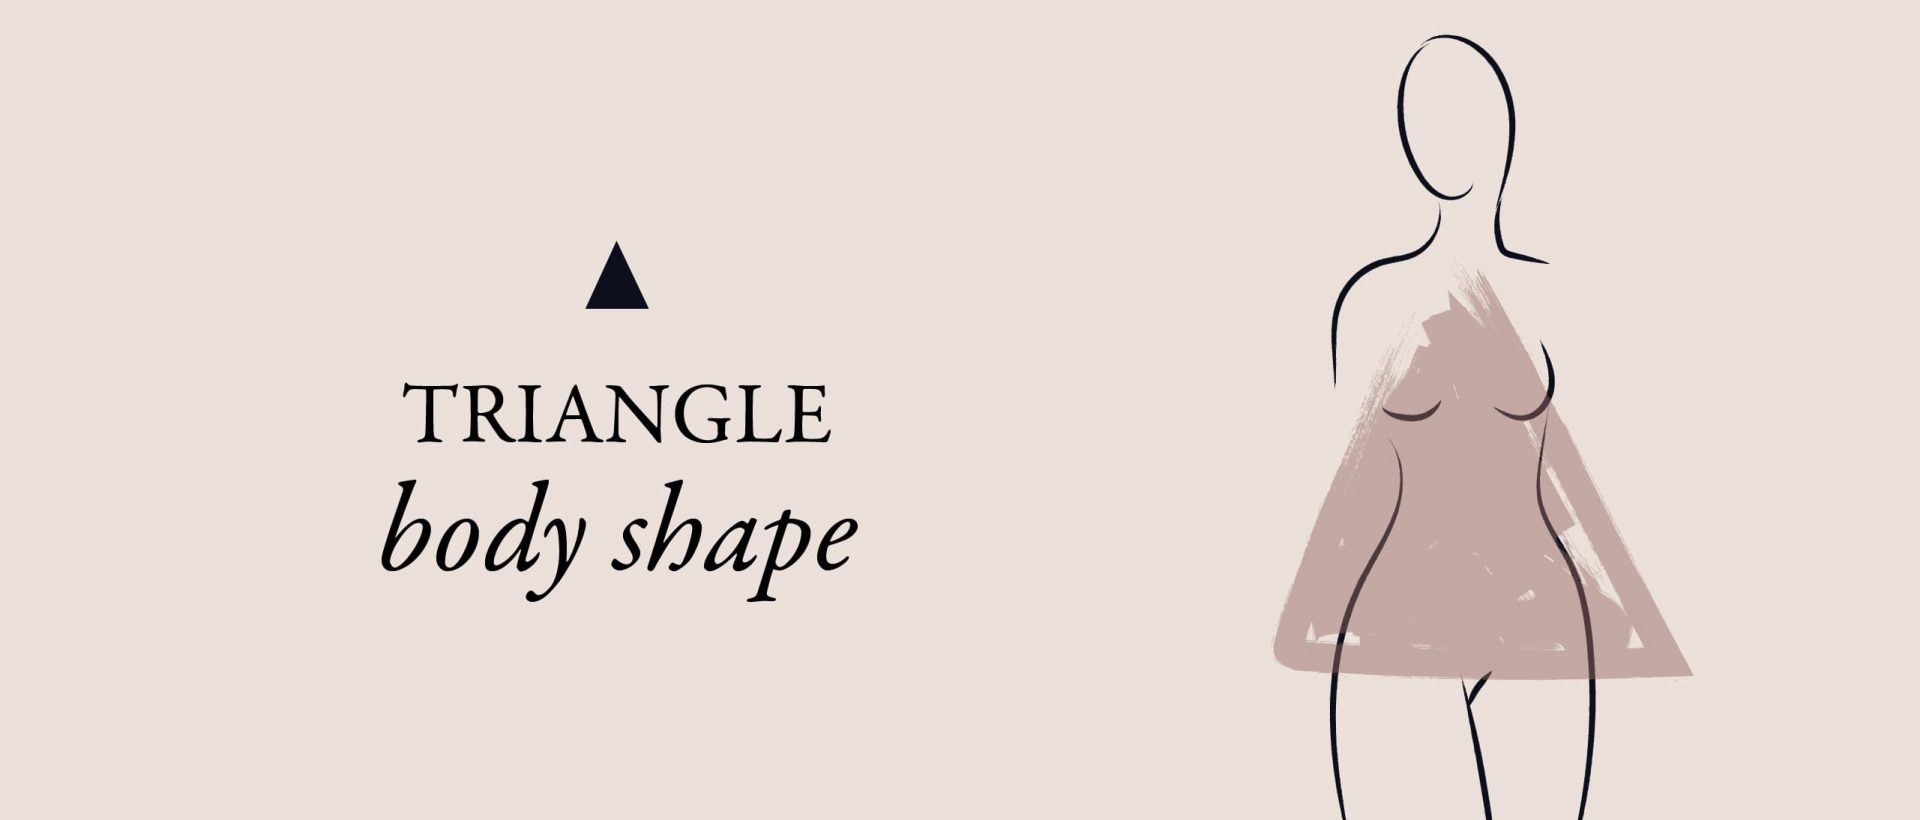 How To Dress If You Have a Triangle Body Shape